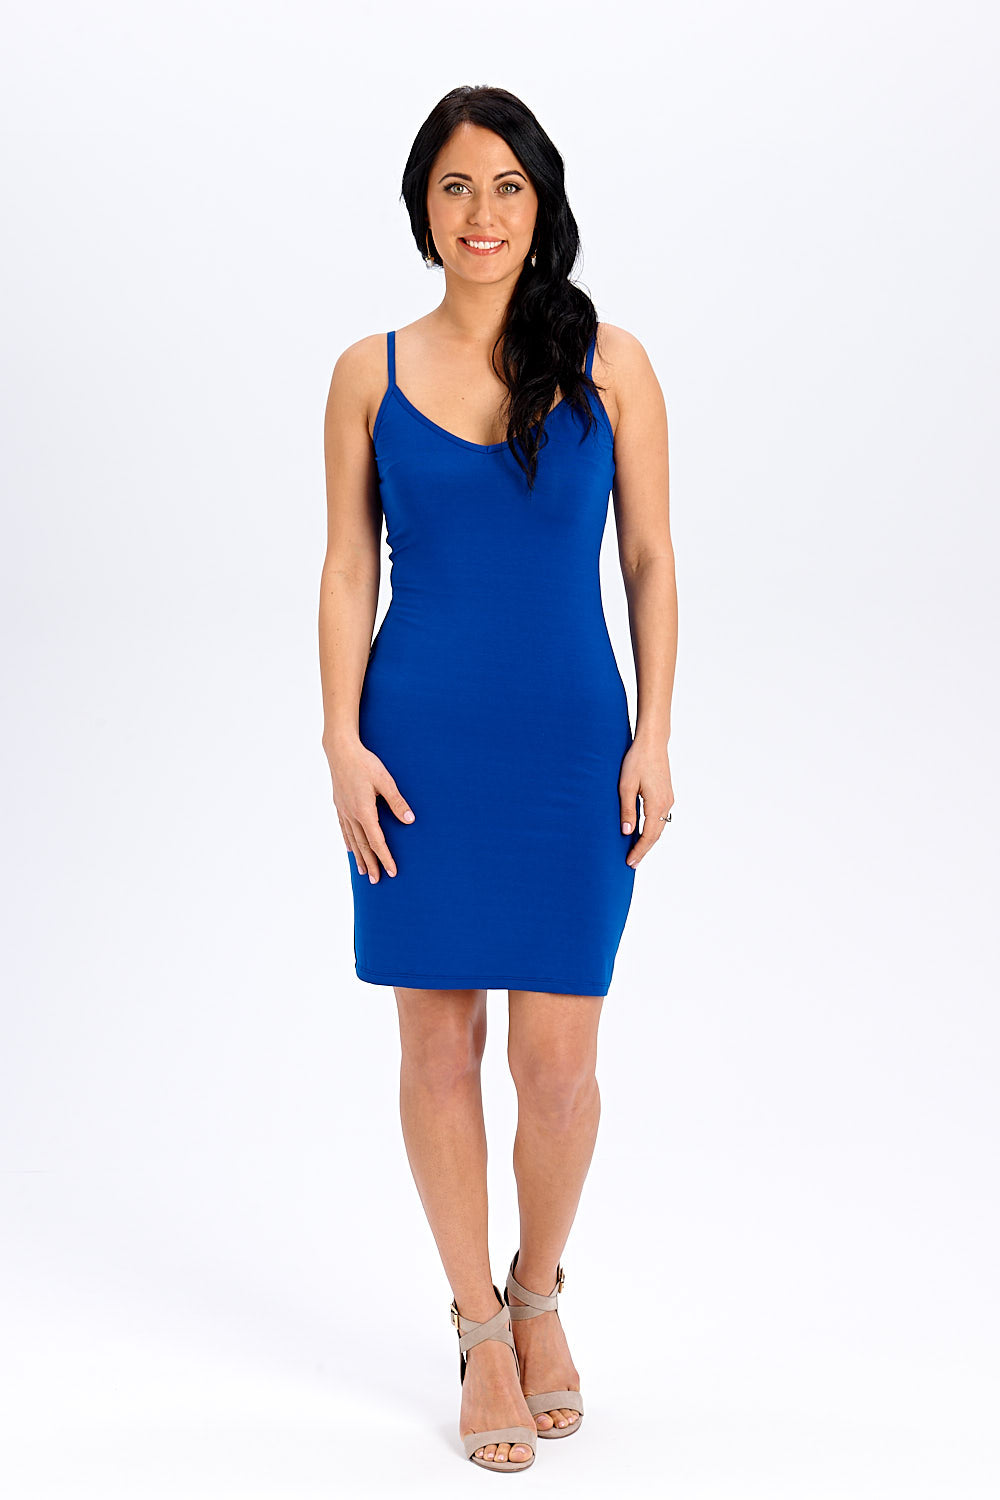 Reversible Slip Dress (select colours on sale only)